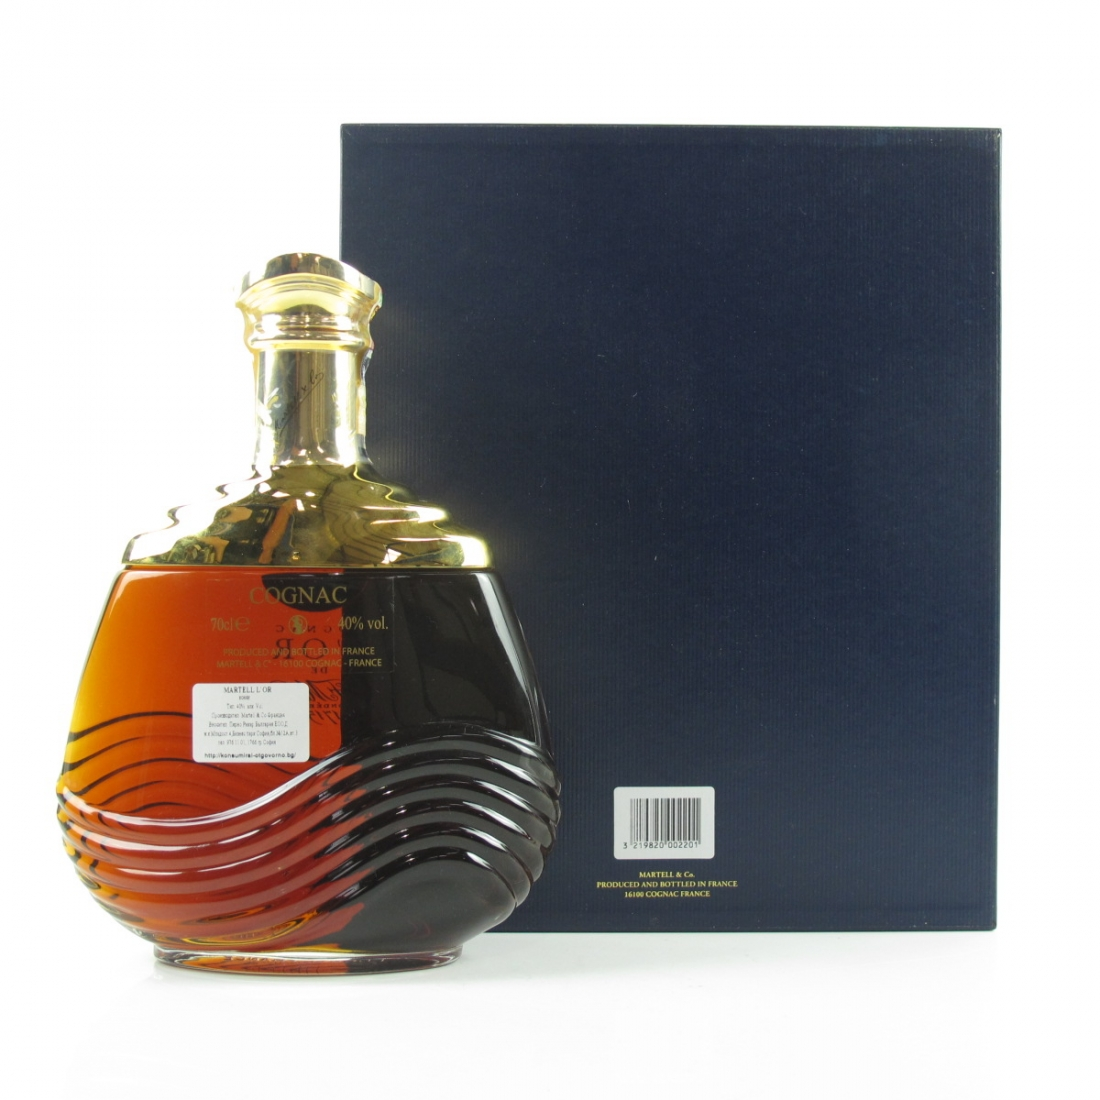 Martell L'or De Cognac Crystal Baccarat Decanter